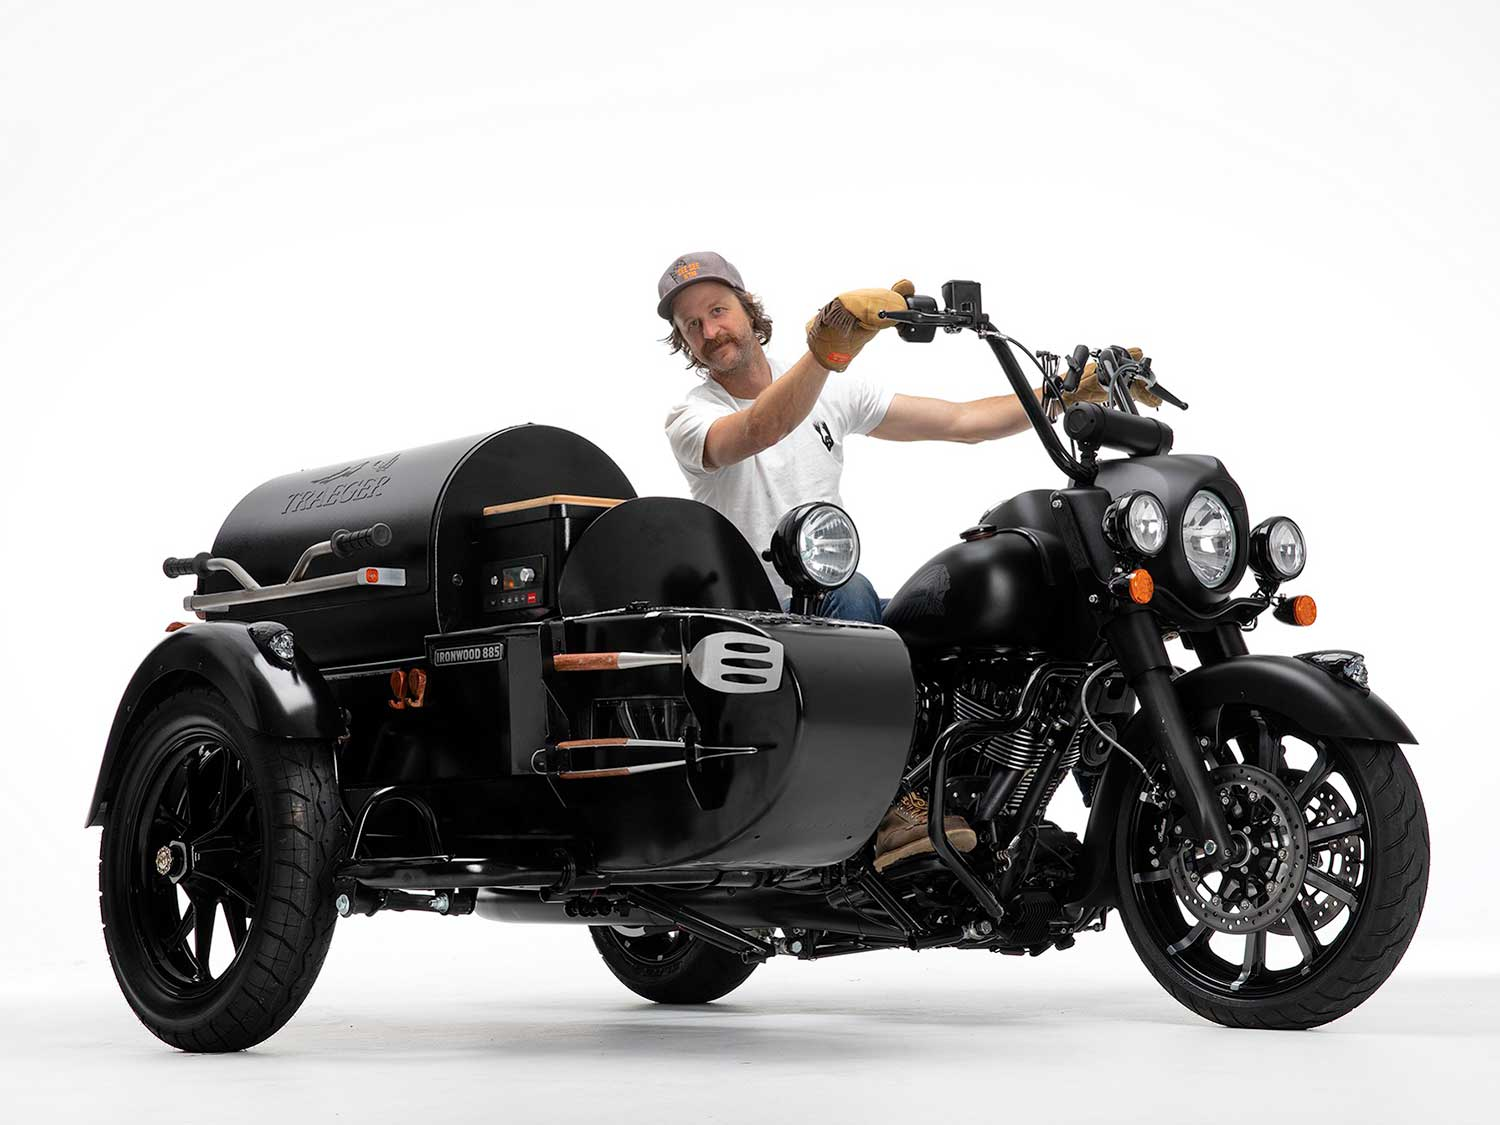 5 Things We'd Change On The Harley-Davidson Sportster 1200